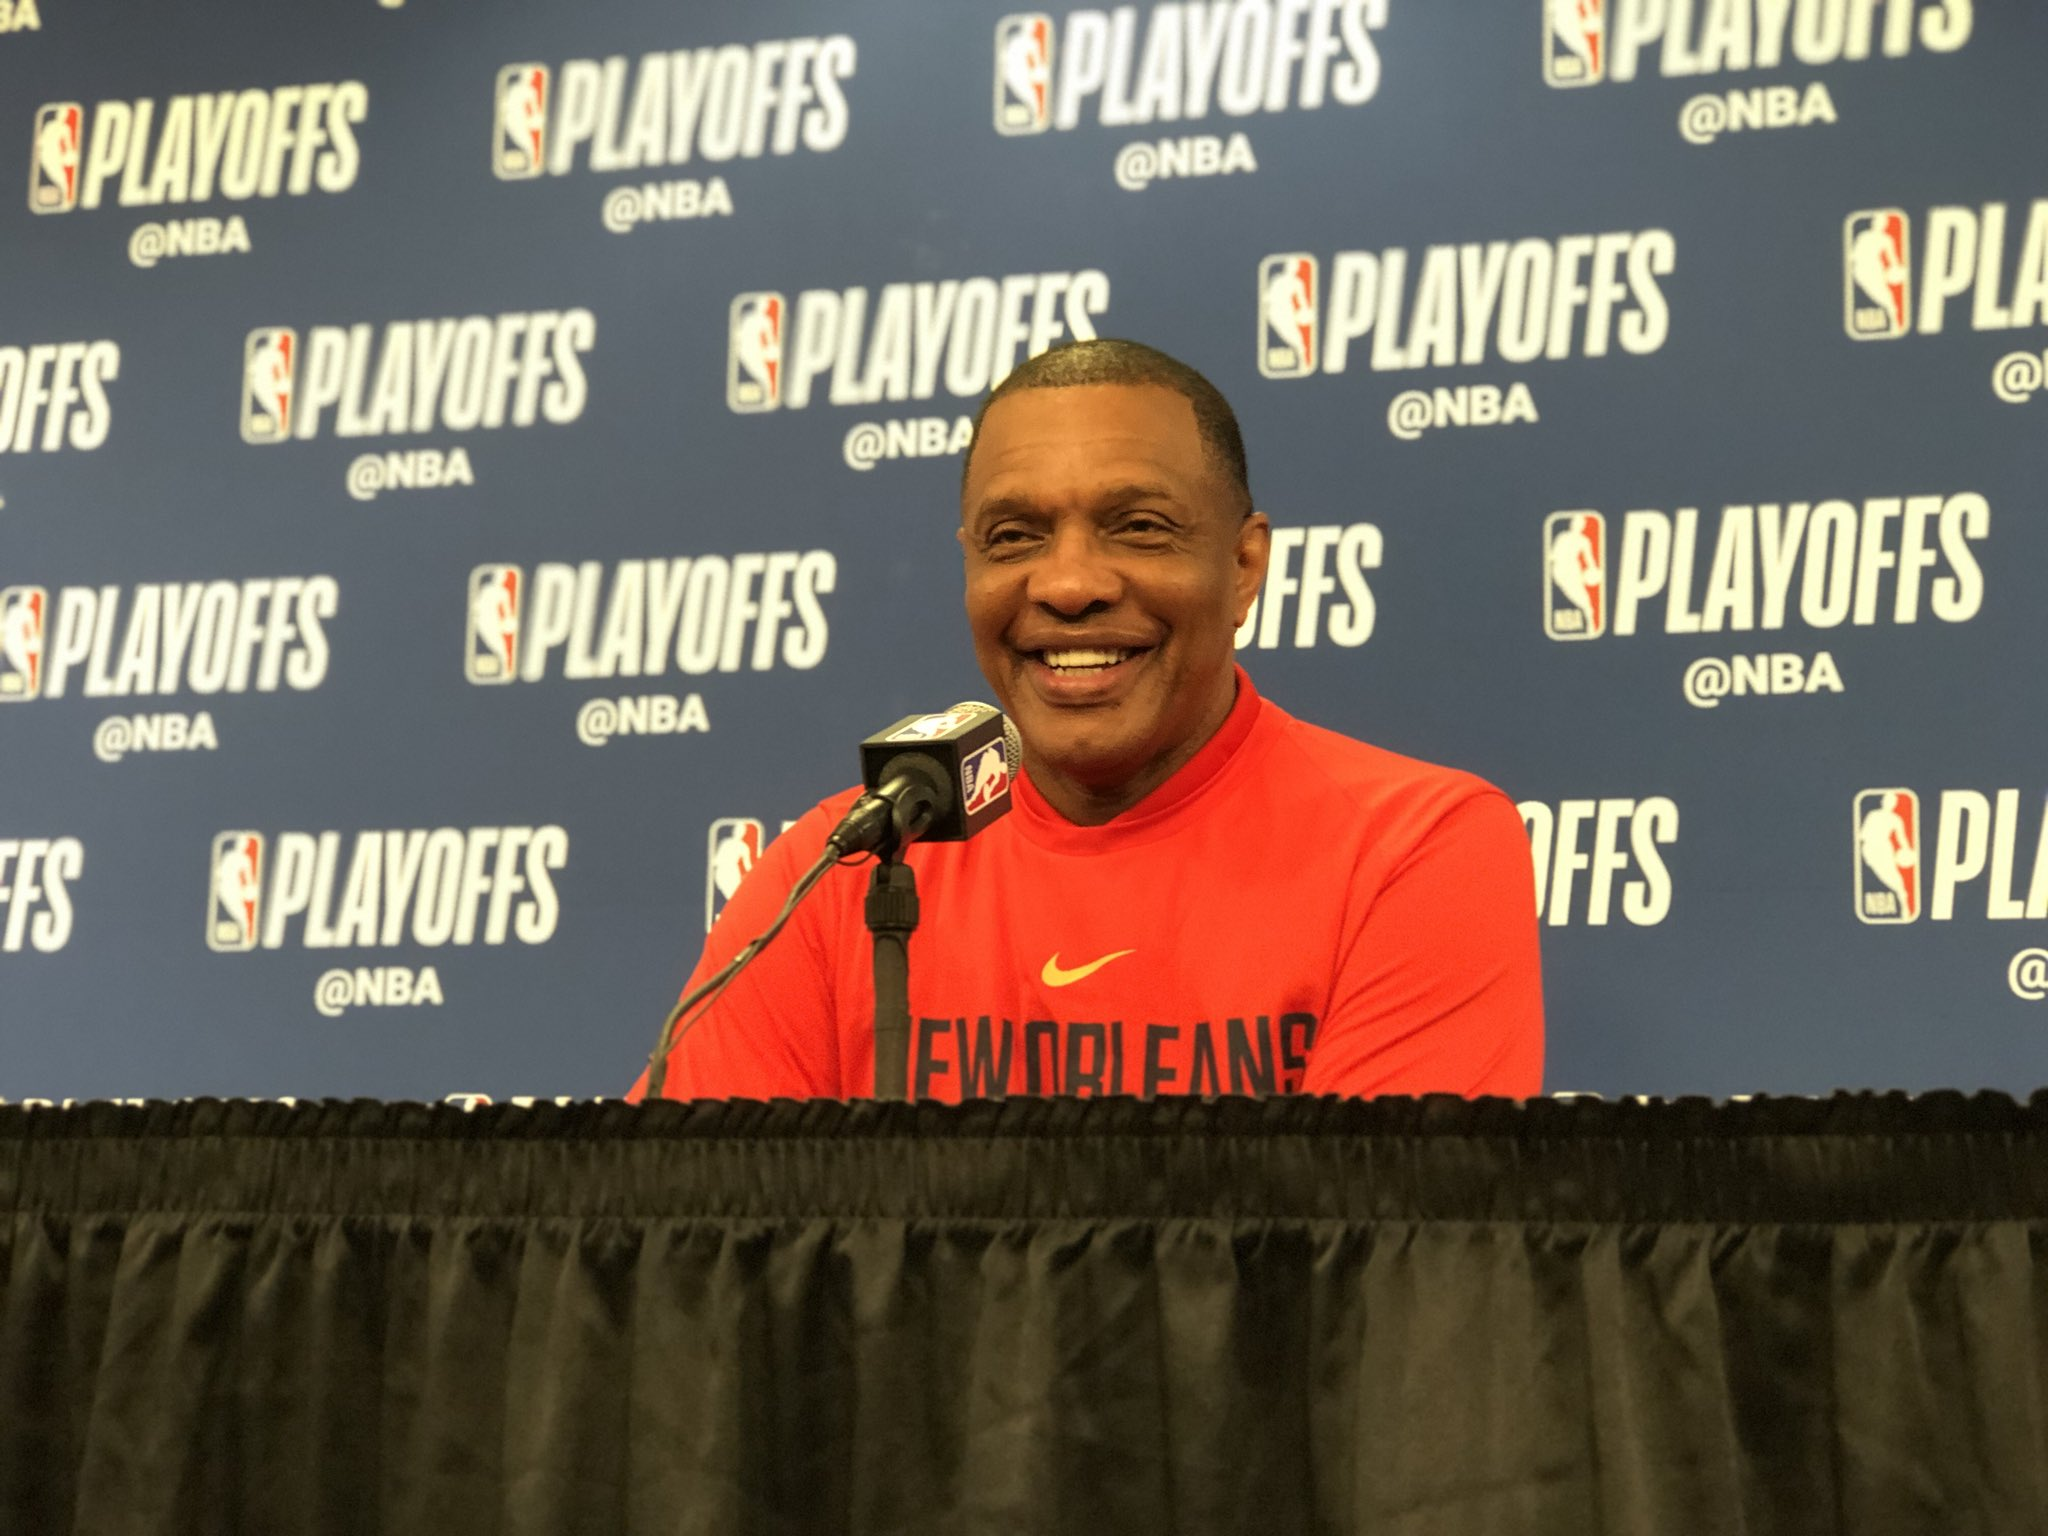 Gentry is speaking with the media pregame. Watch live: https://t.co/es6YOqpLj6 #DoItBigger   (Via @dixiebrewco) https://t.co/Ep95Zo1gu8